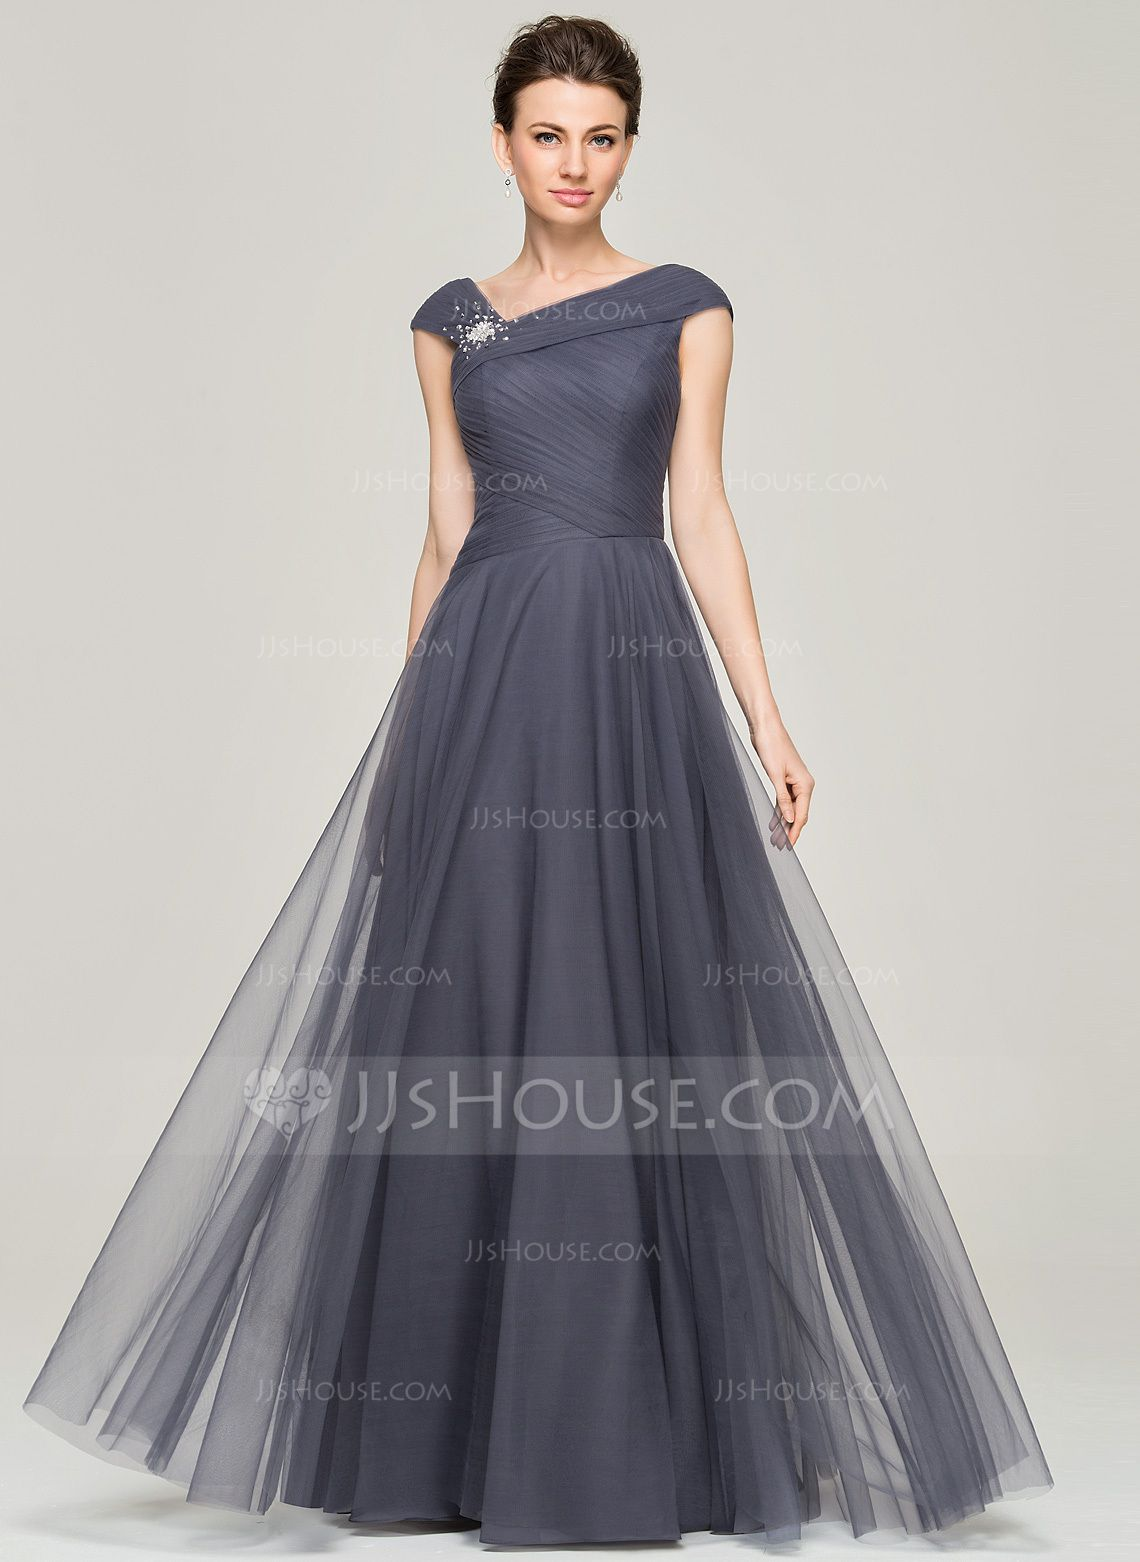 911f13863ec A-Line Princess V-neck Floor-Length Tulle Mother of the Bride Dress With  Beading Sequins (008062861) - JJsHouse